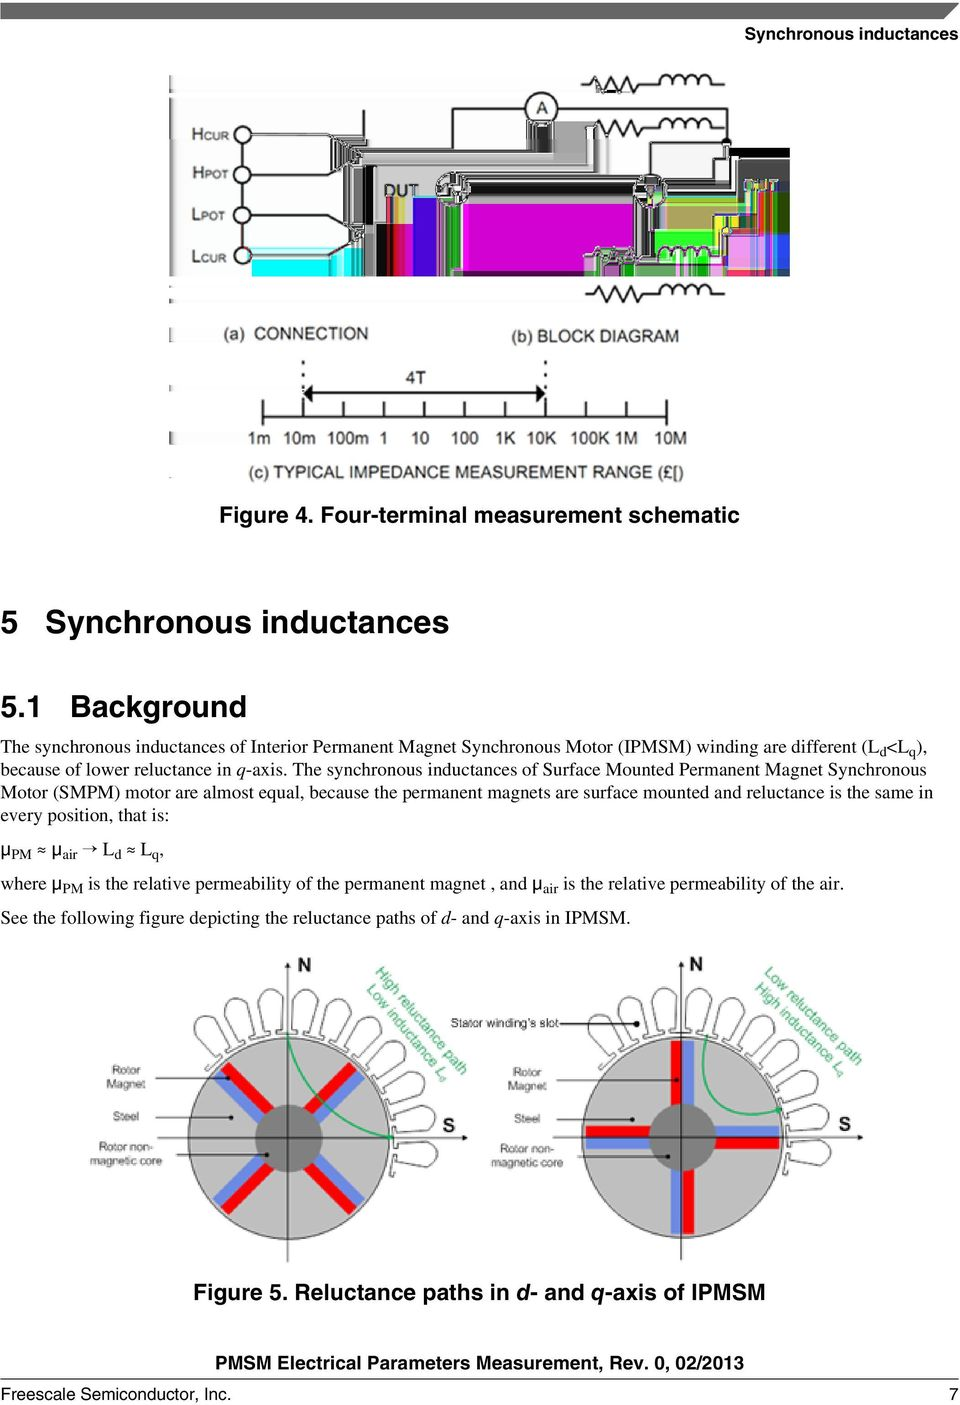 Pmsm Electrical Parameters Measurement Pdf Permanent Magnet Motor Wiring Diagram The Synchronous Inductances Of Surface Mounted Smpm Are Almost